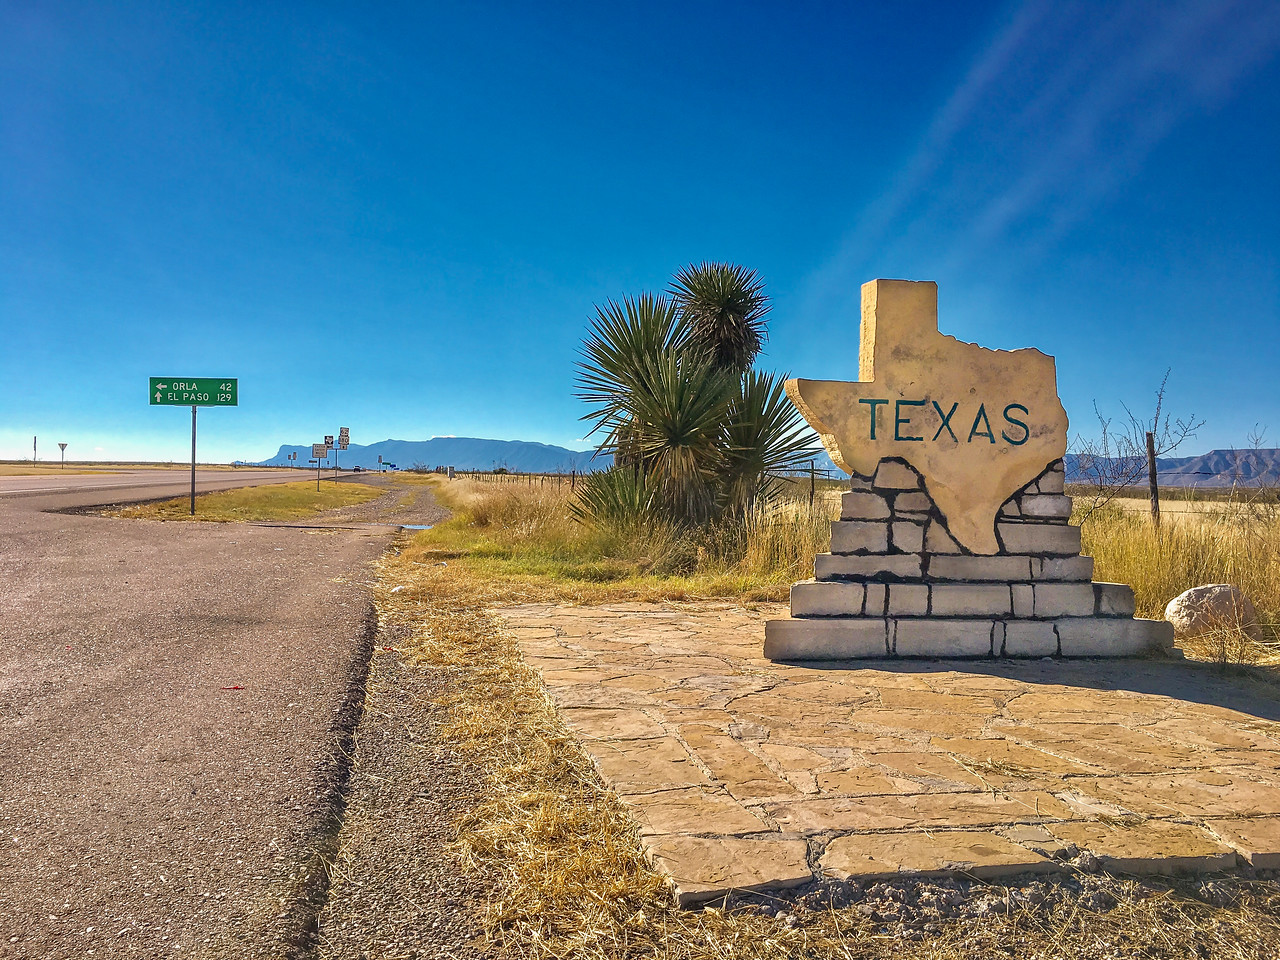 TEXAS-NEW MEXICO STATE LINE WITH THE GUADALUPE MOUNTAINS SEEN IN THE BACKGROUND